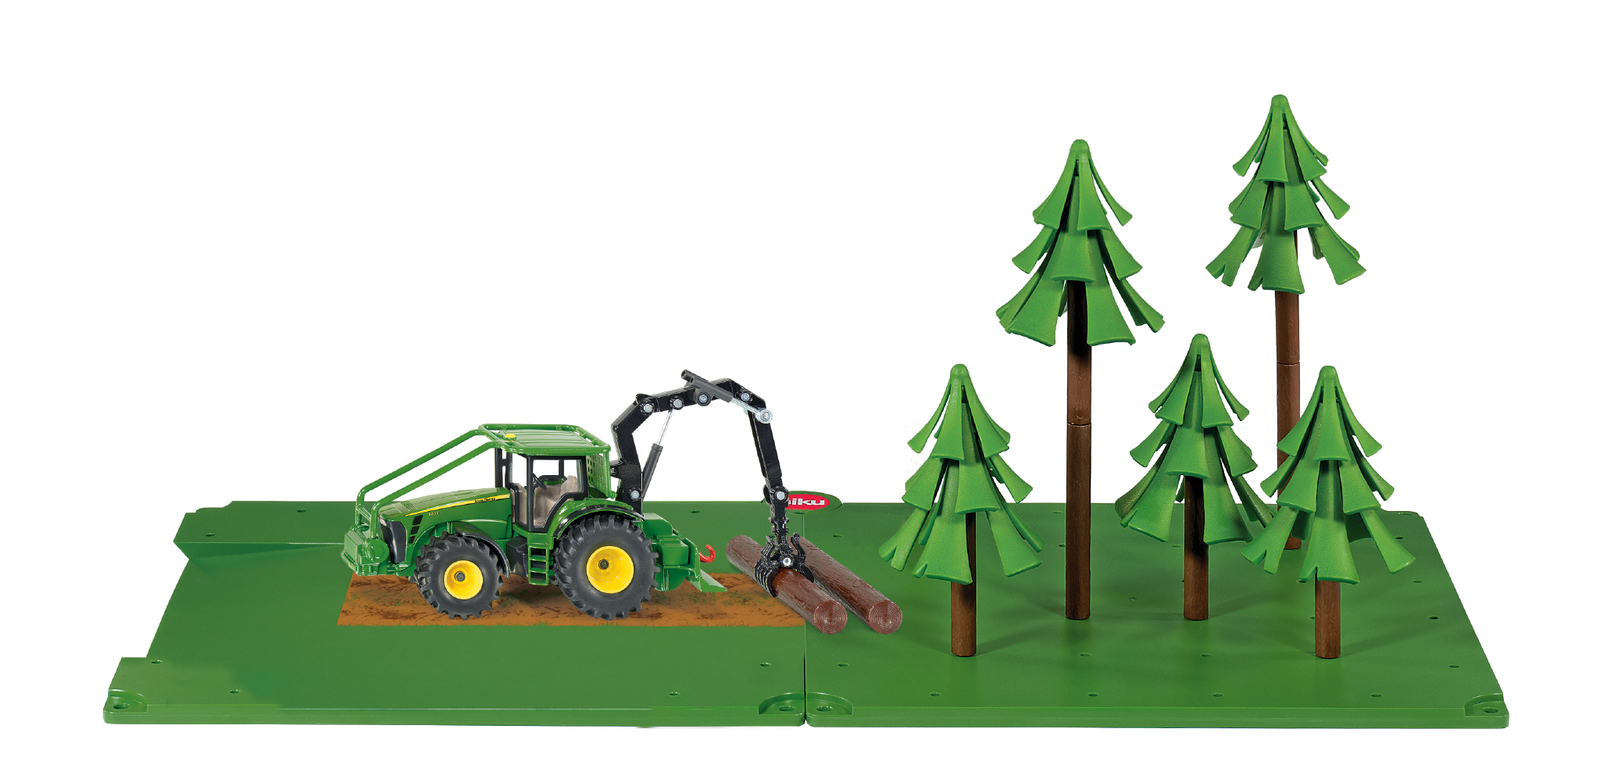 Siku: World Farm Forestry Set + John Deere image